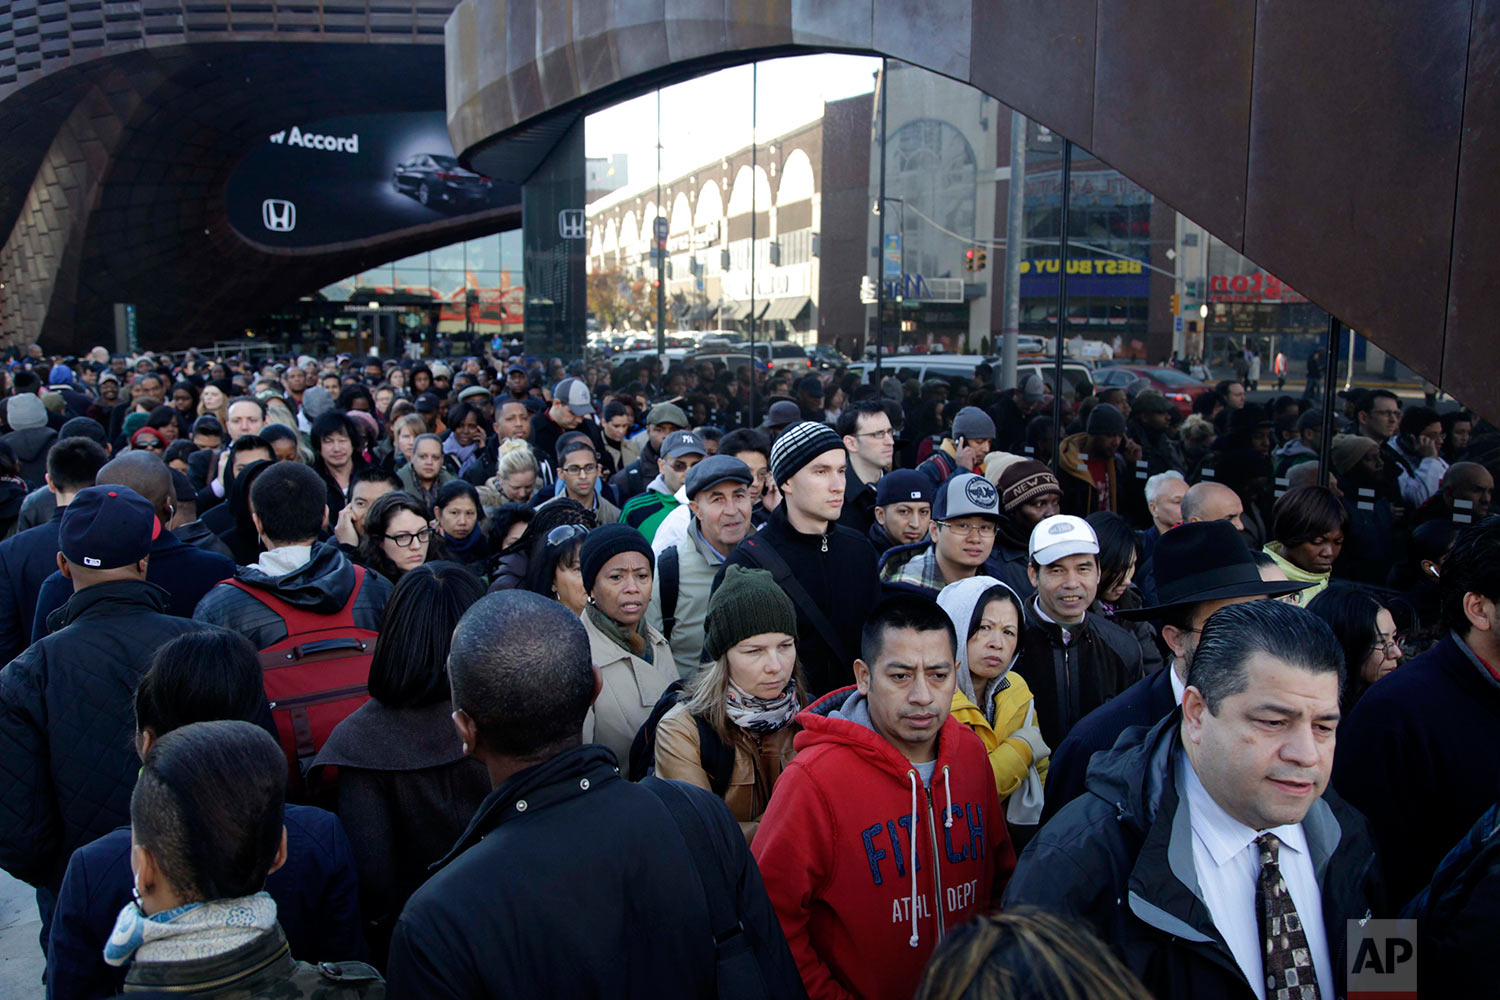 Commuters wait in a line to board buses into Manhattan in front of the Barclays Center in Brooklyn, New York, Thursday, Nov. 1, 2012. The line stretched twice around the arena and commuters reported wait times of one to three hours to get on a bus. (AP Photo/Seth Wenig)